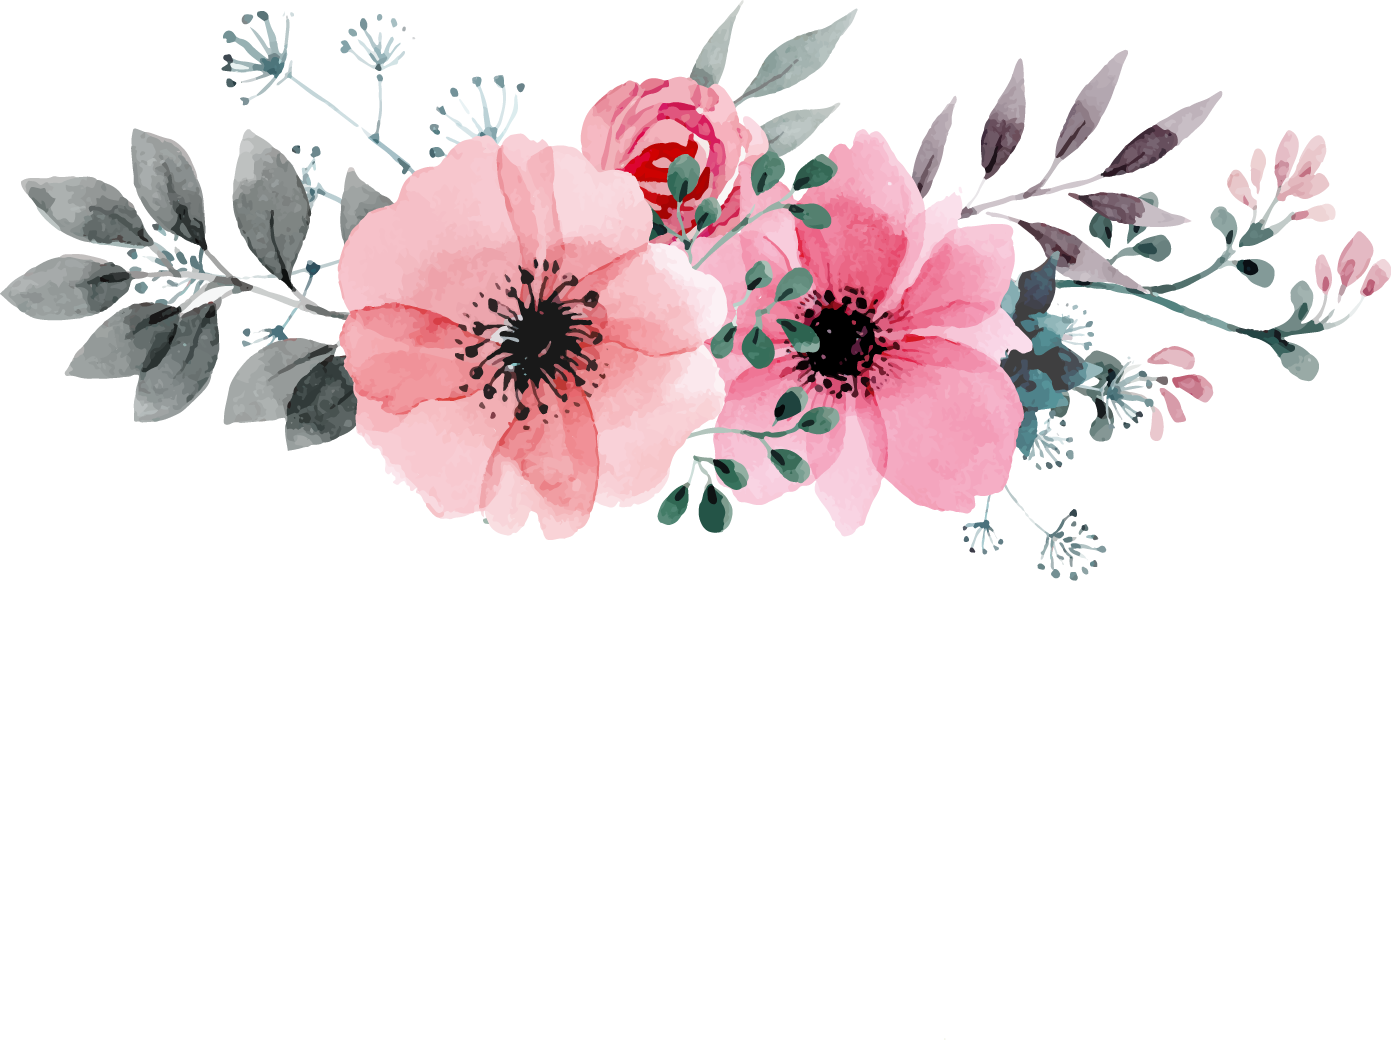 Watercolor painting flower drawing. Drawn flowers png clipart royalty free library